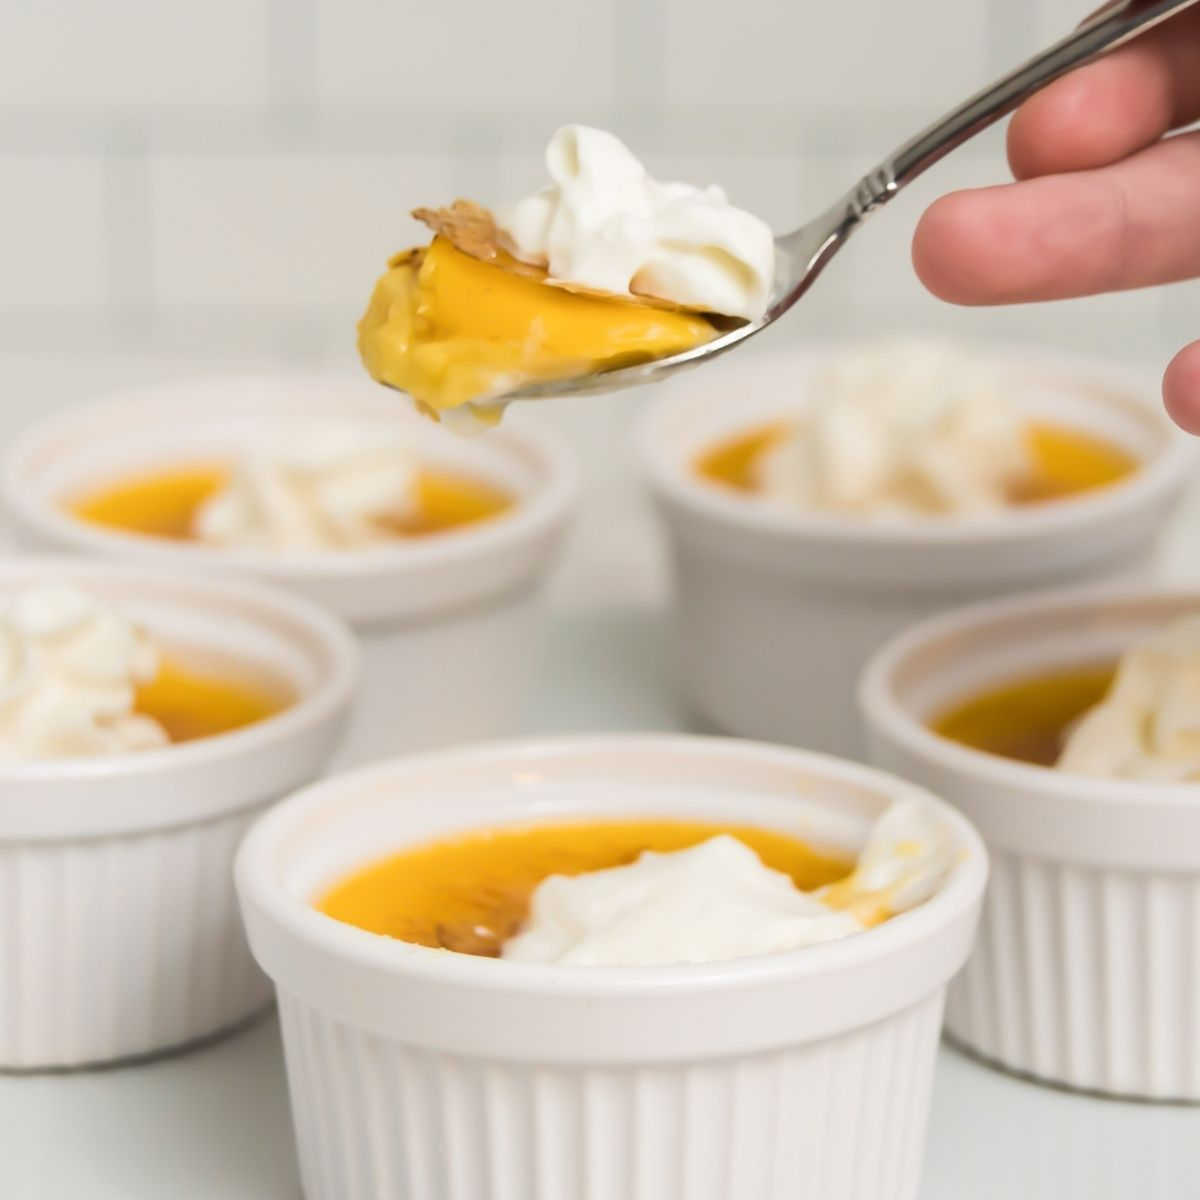 spoon holding creme brulee with whipped cream